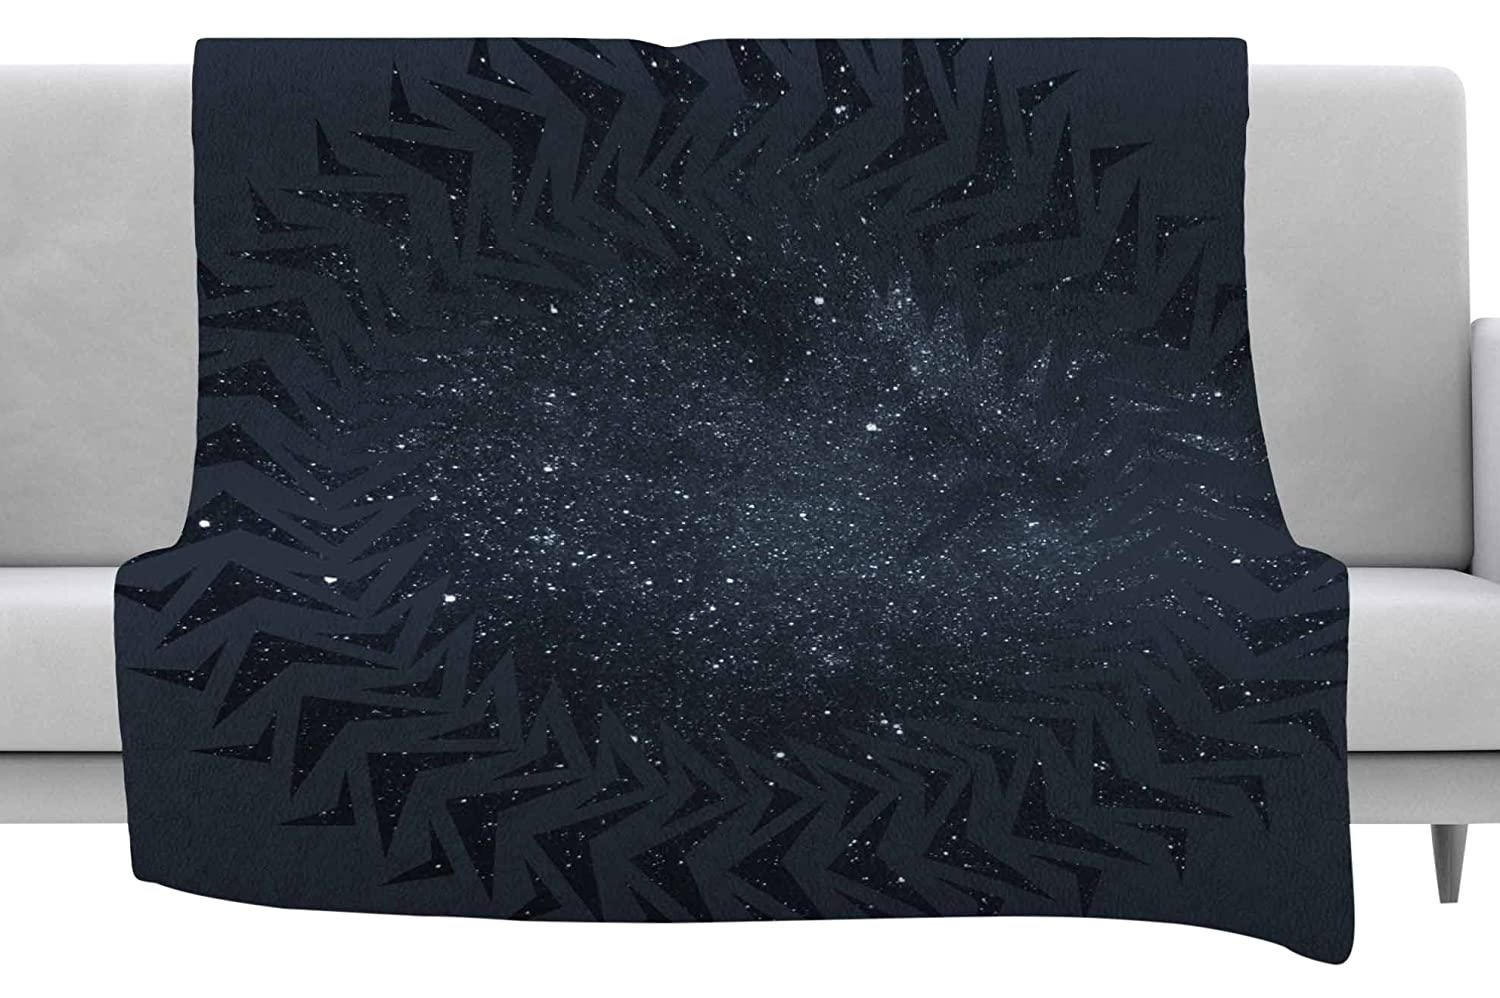 40 x 30 Fleece Blanket Kess InHouse Matt Eklund Lunar Chaos Blue Celestial Throw